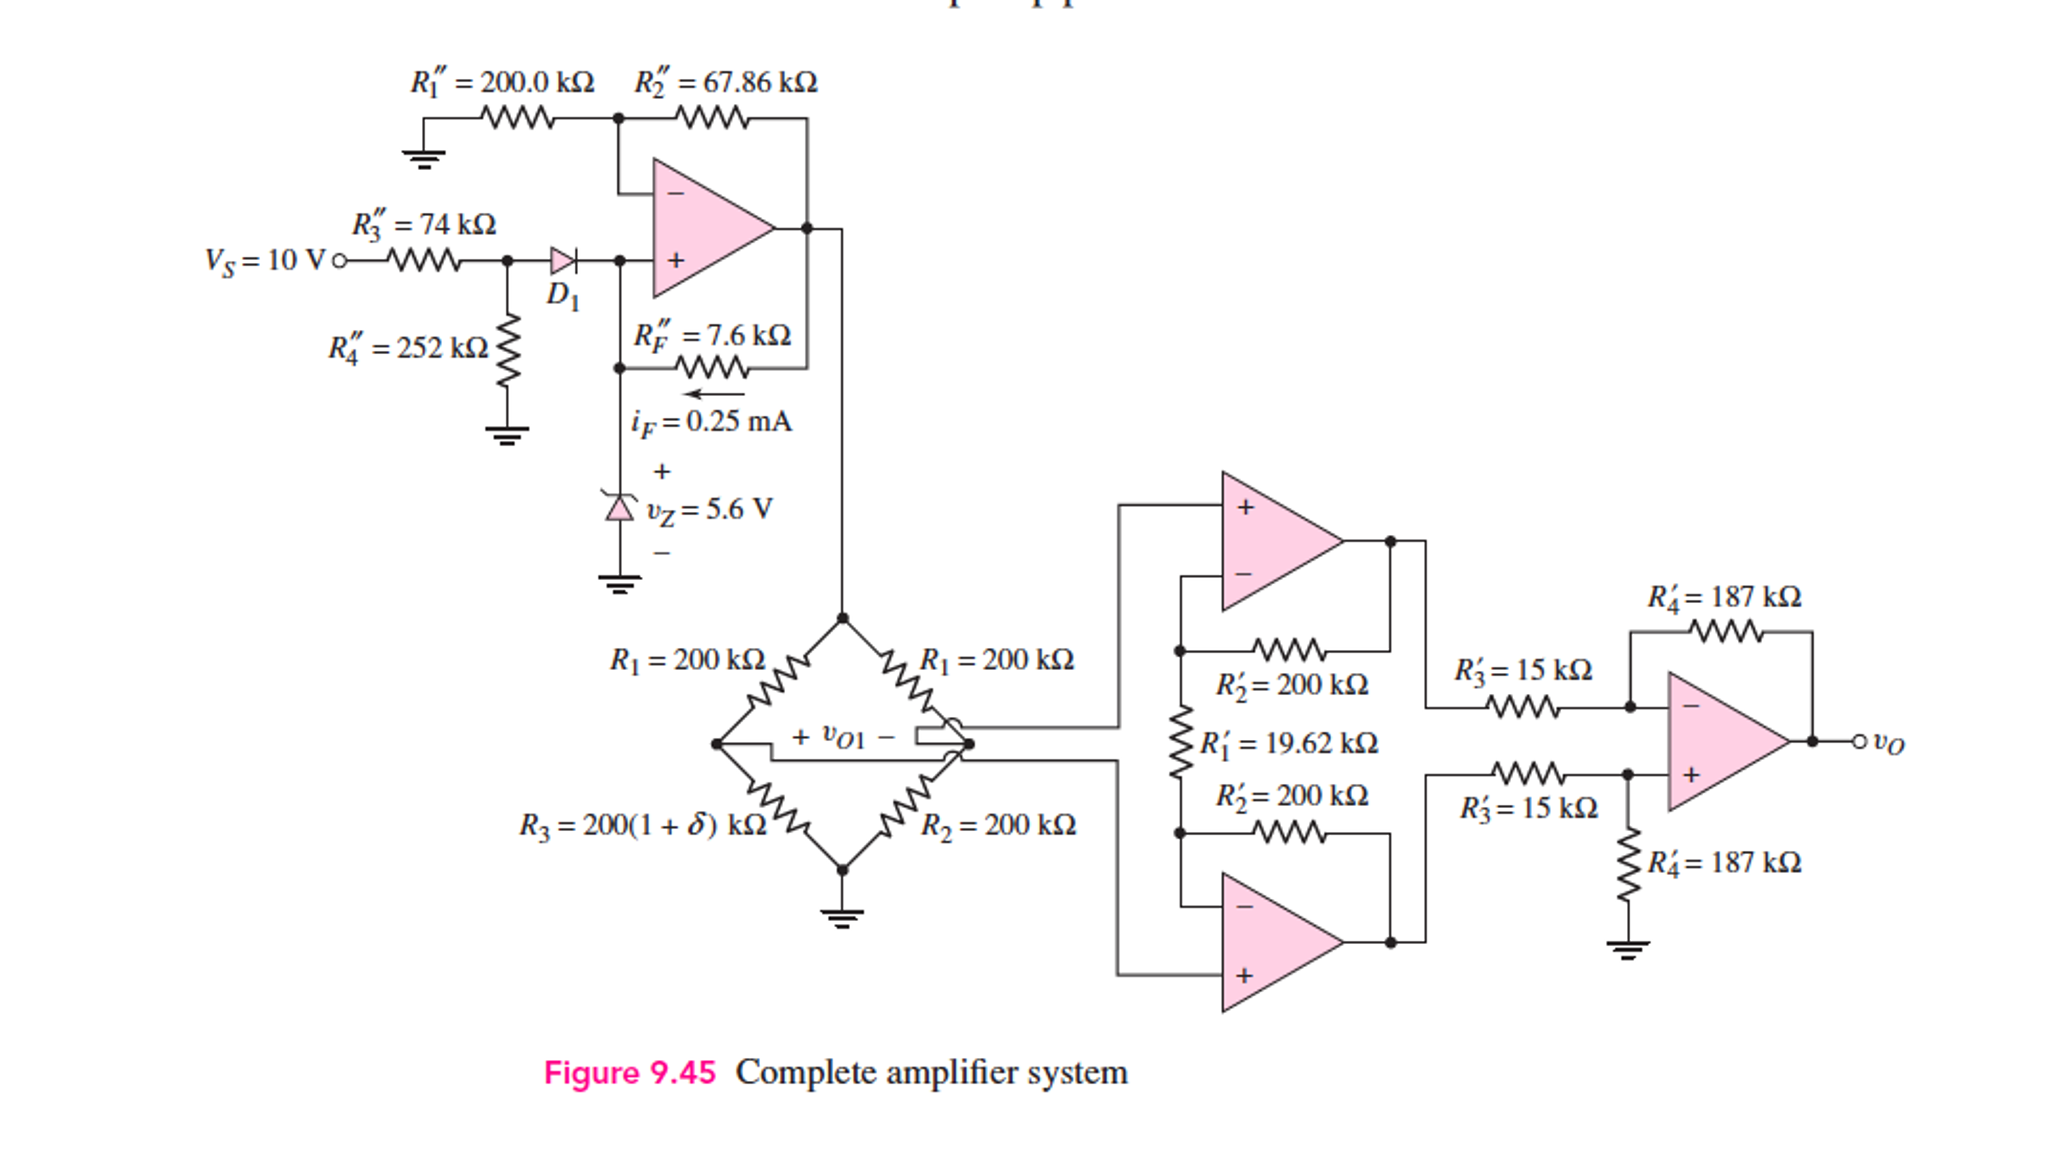 Design An Instrumentation Amplifier For A Transduc Circuit Diagram Images Attached 10 V 2000 Kq R 6786 74 Q Rf 76 Ks2 252 If 0